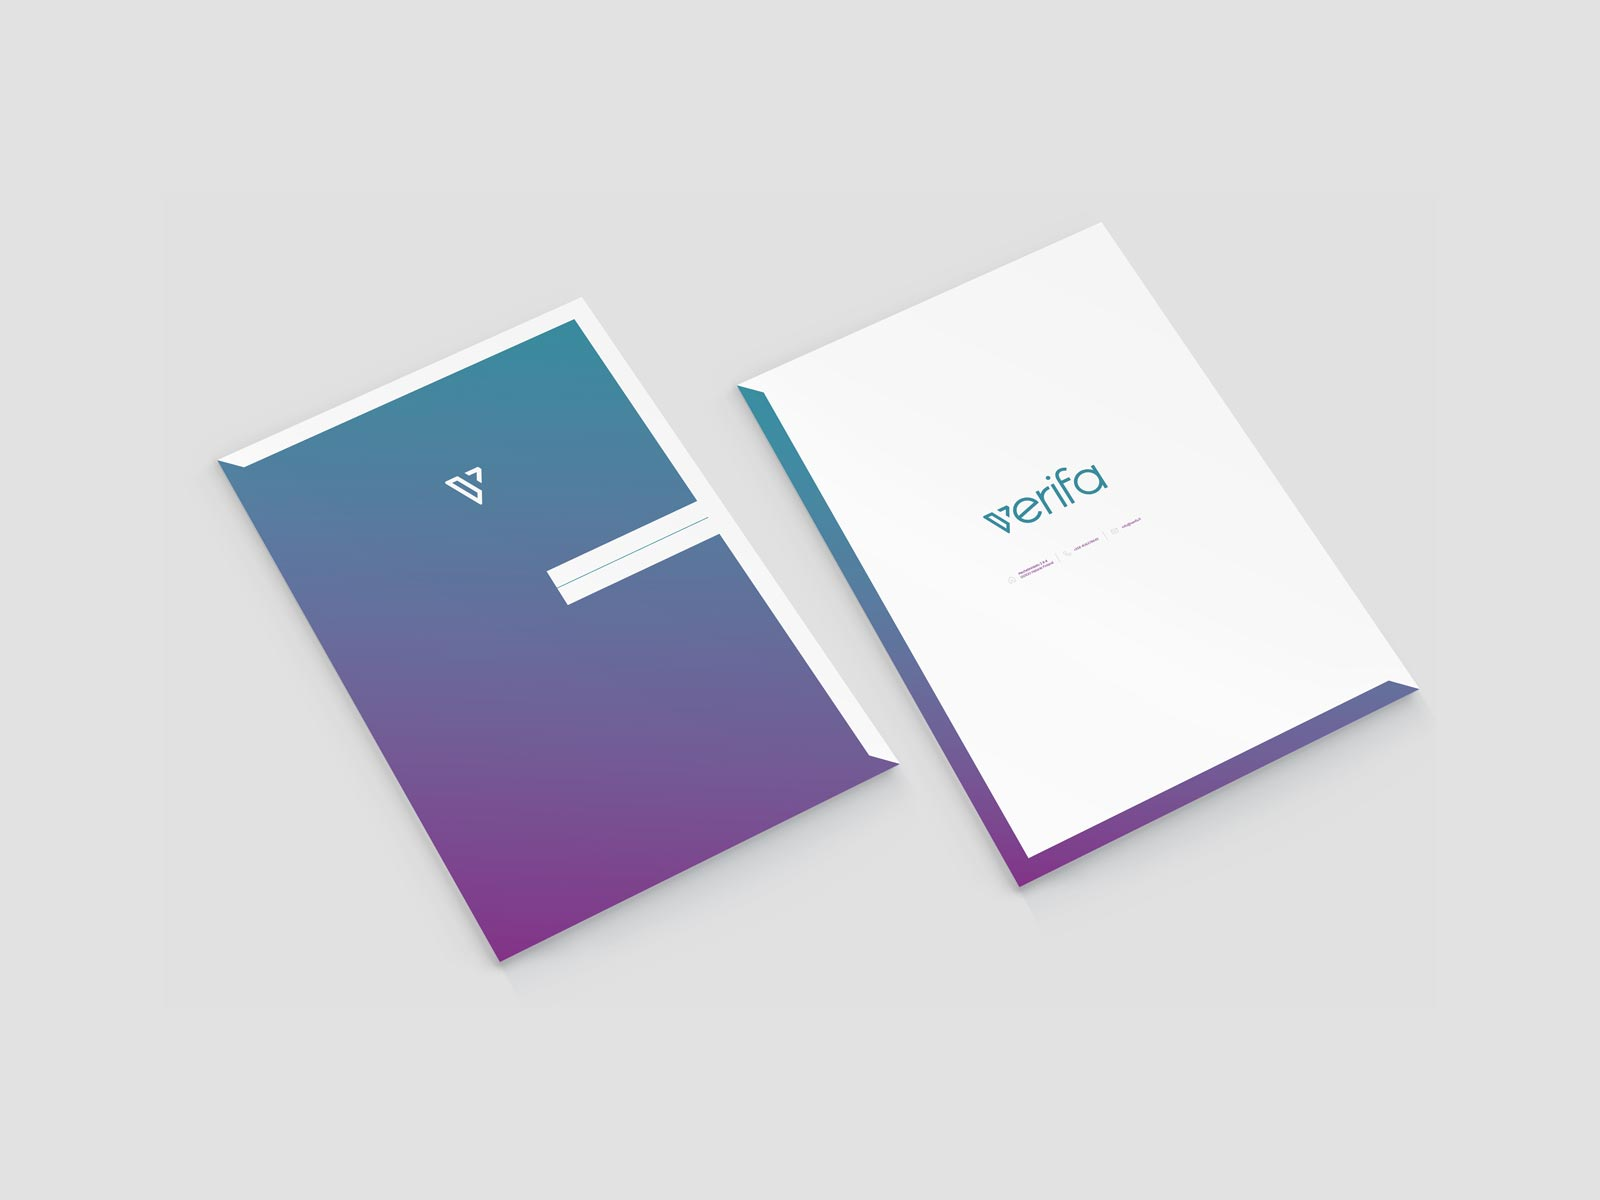 verifa folder stationery branding design